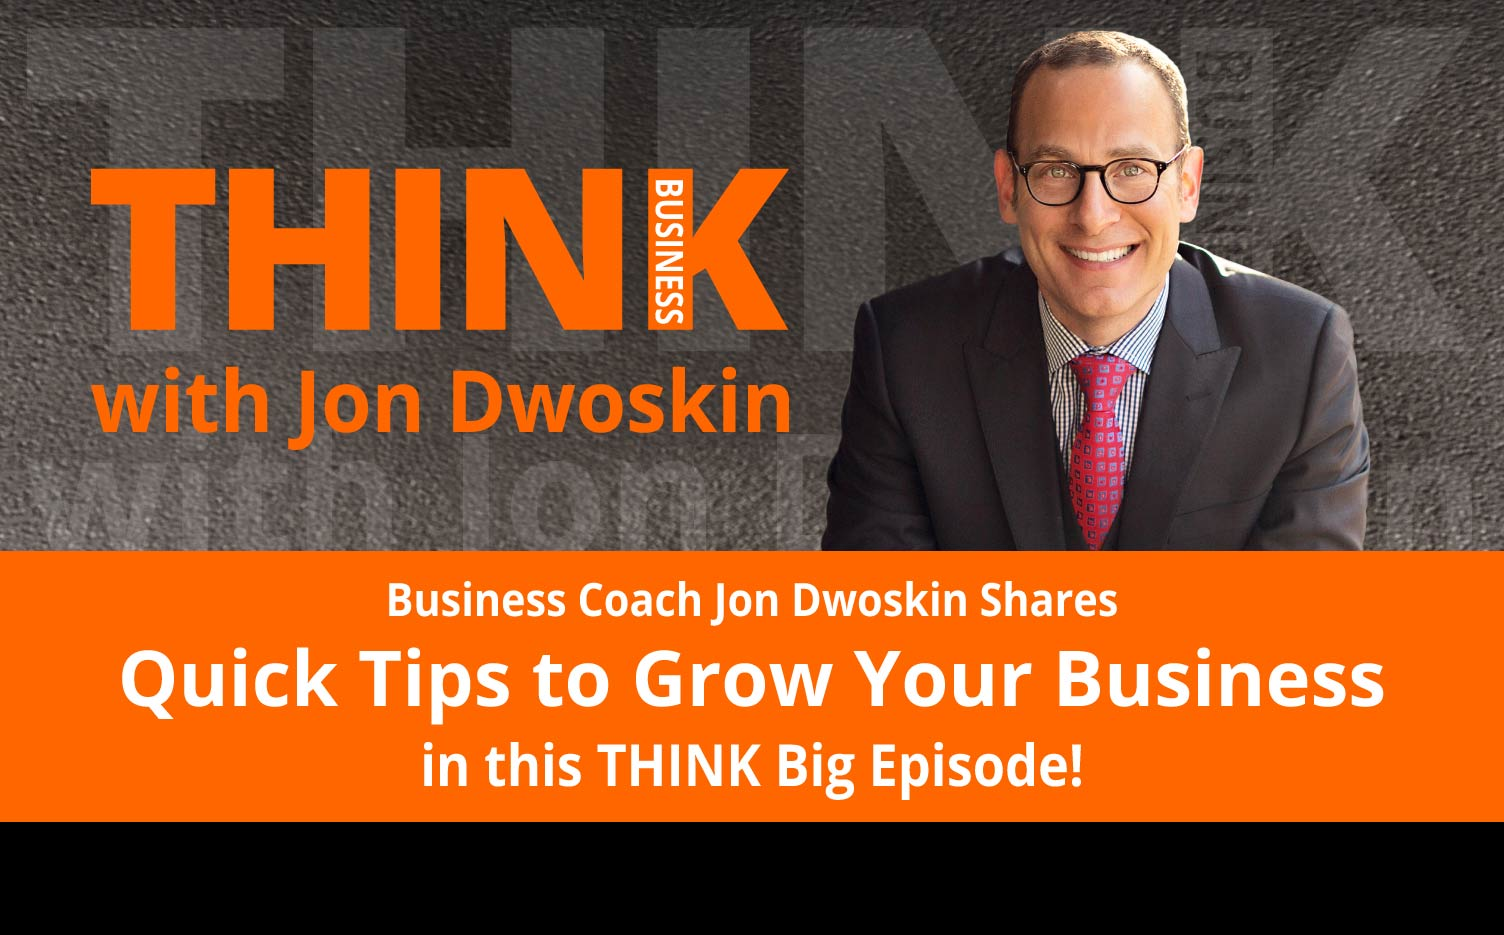 THINK Business Podcast: Today's Quick Tip: Course Correct In Your Business